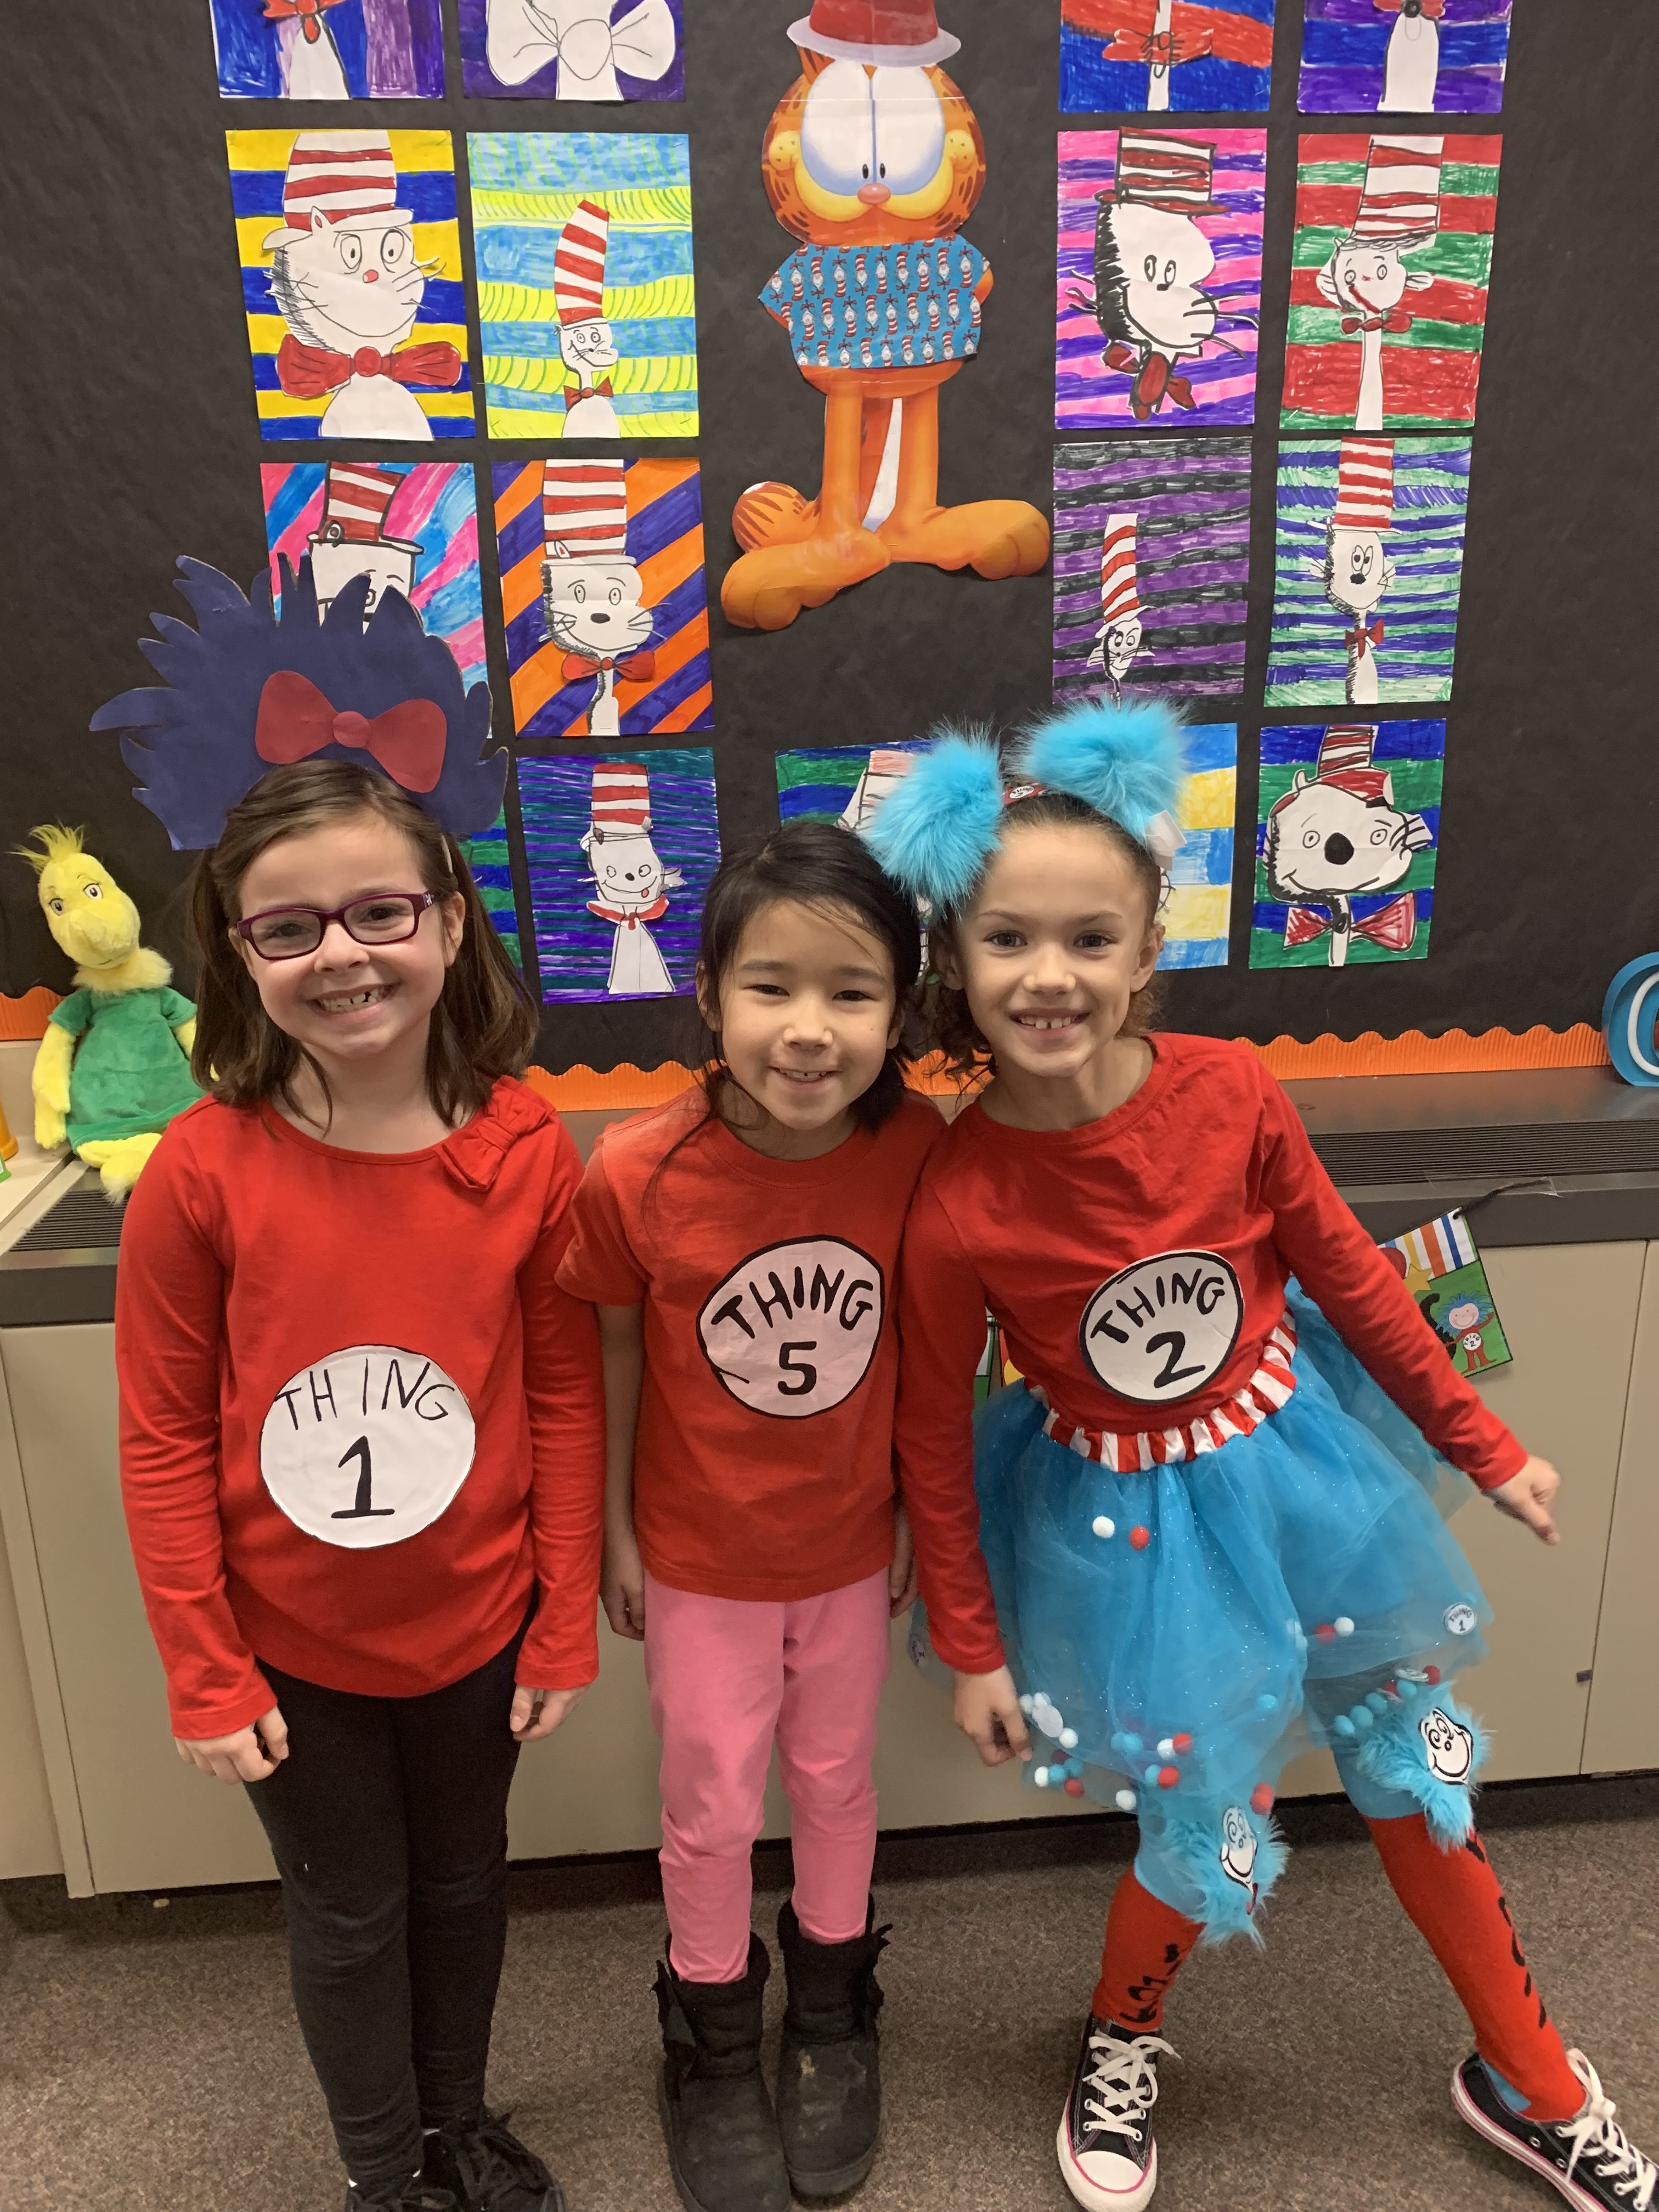 Three students dressed as Thing 1 and Thing 2